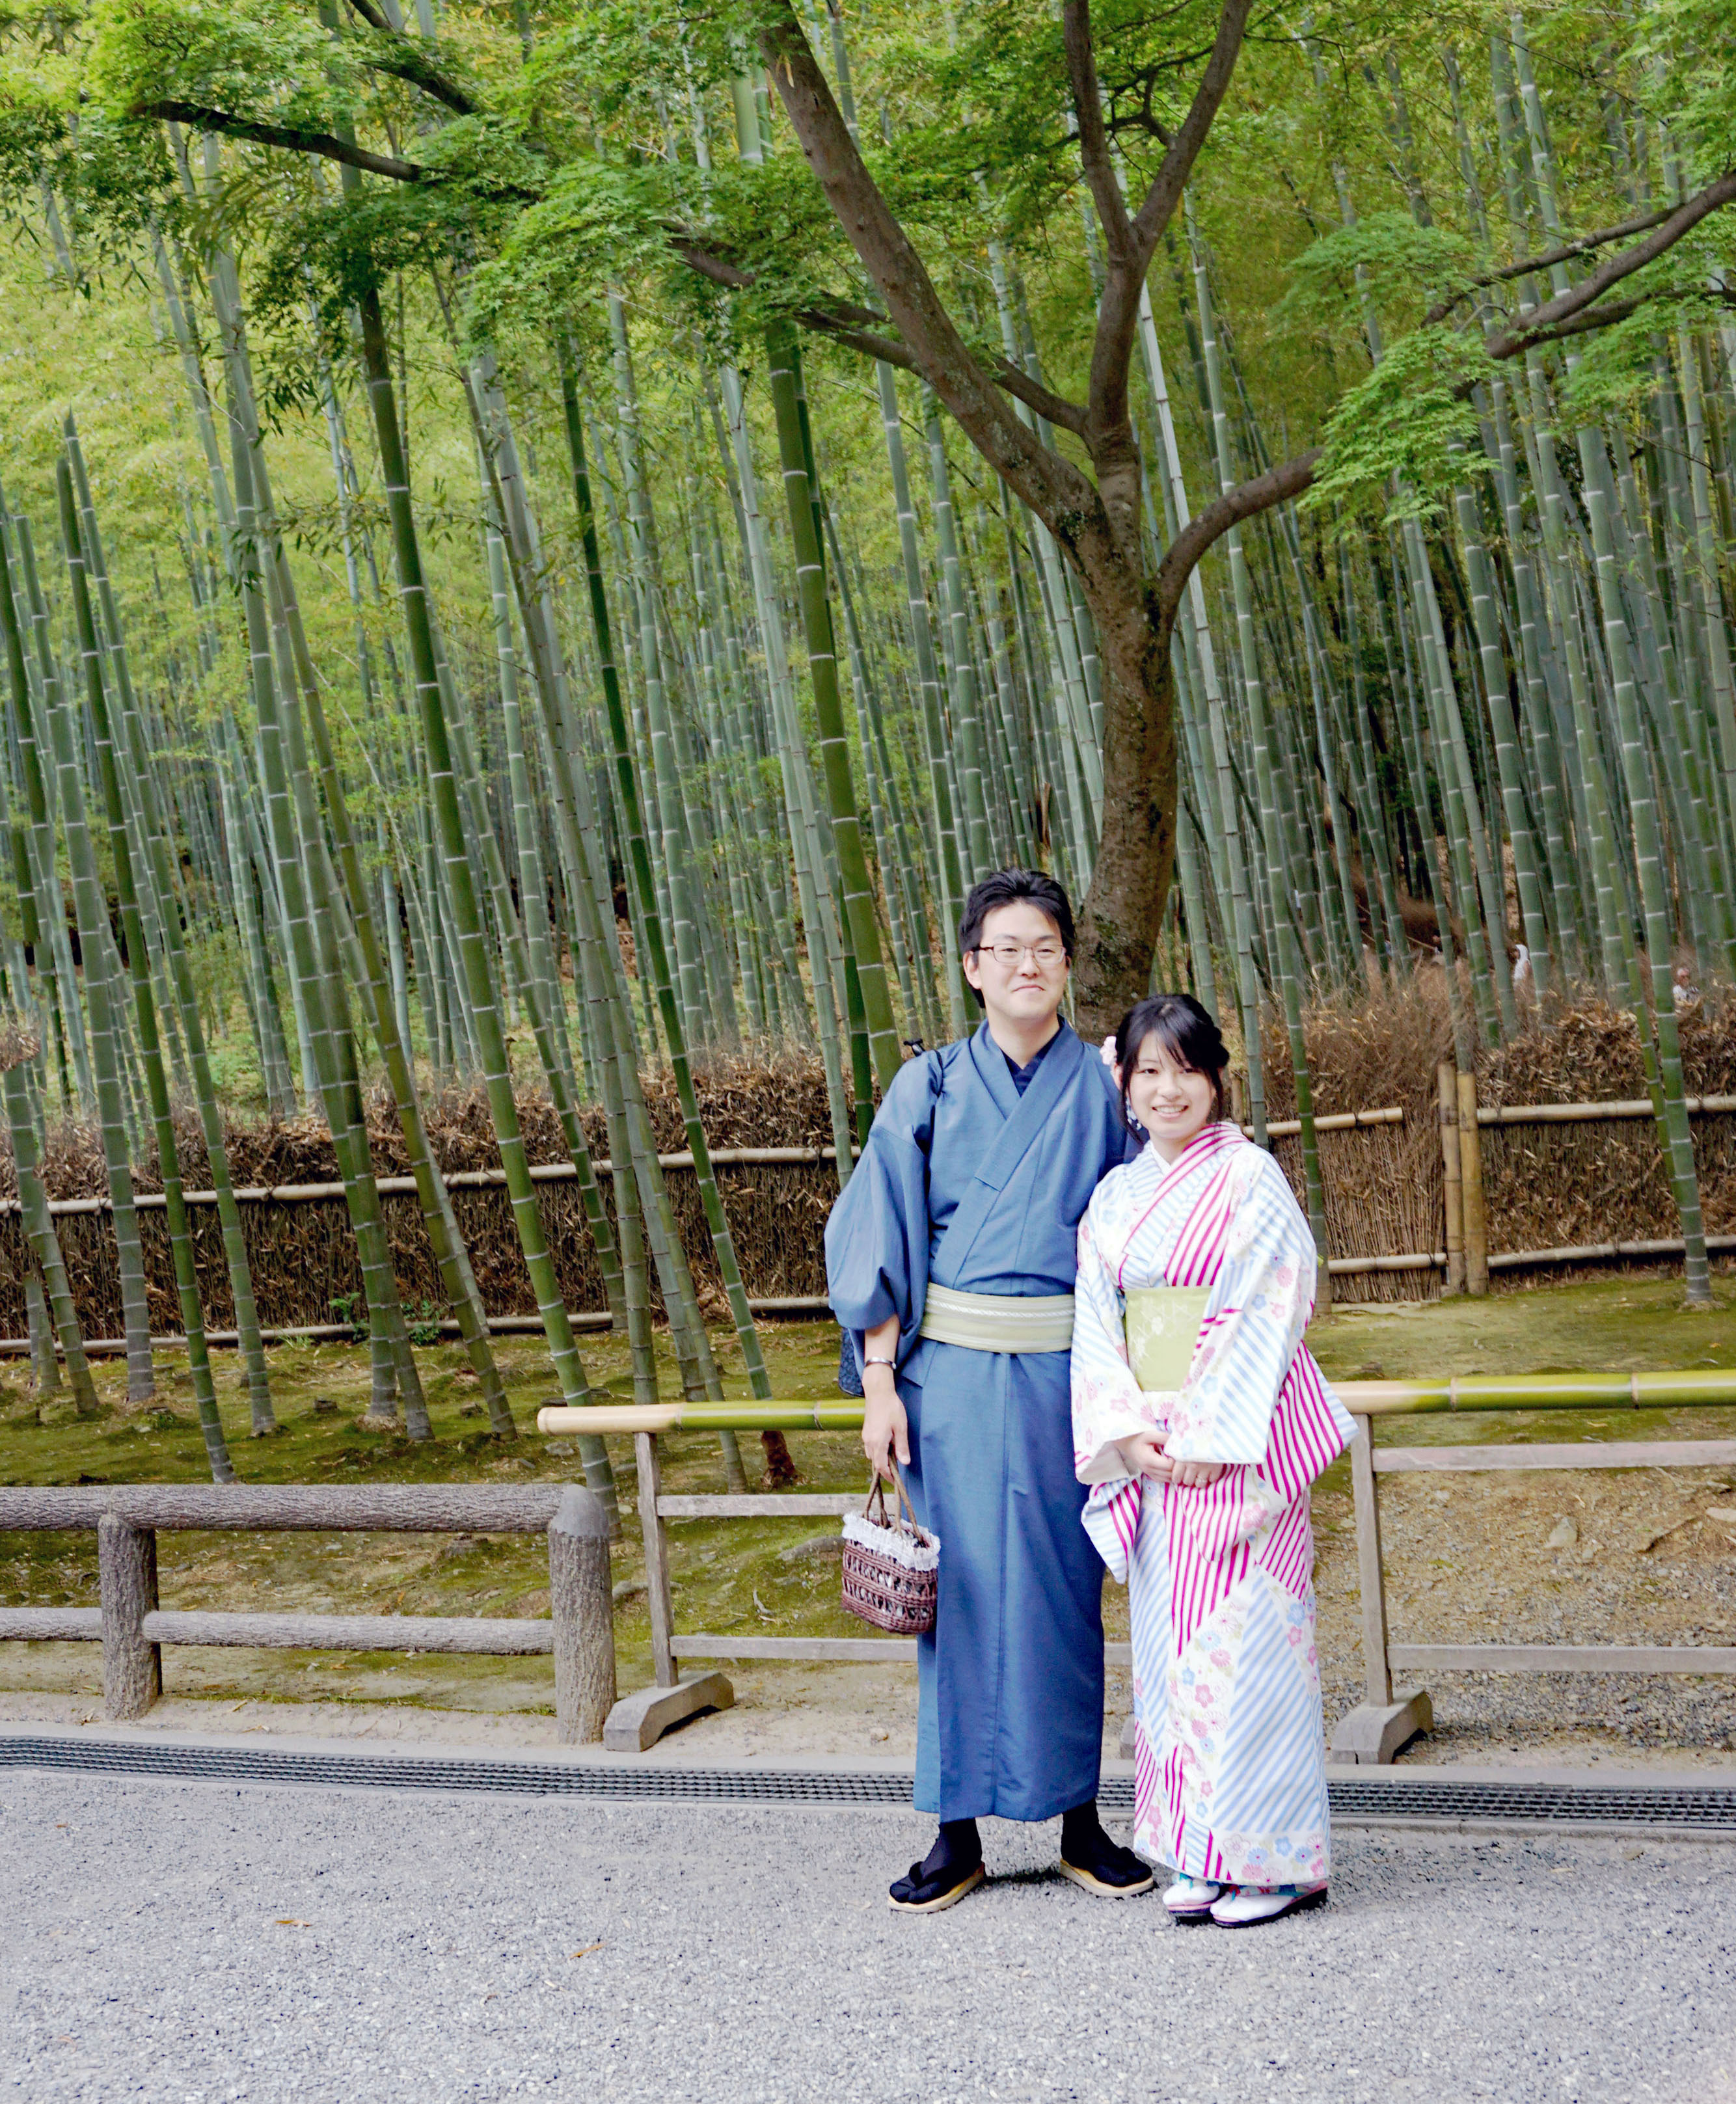 Kimona Clad Locals sightseeing in Bamboo Forest